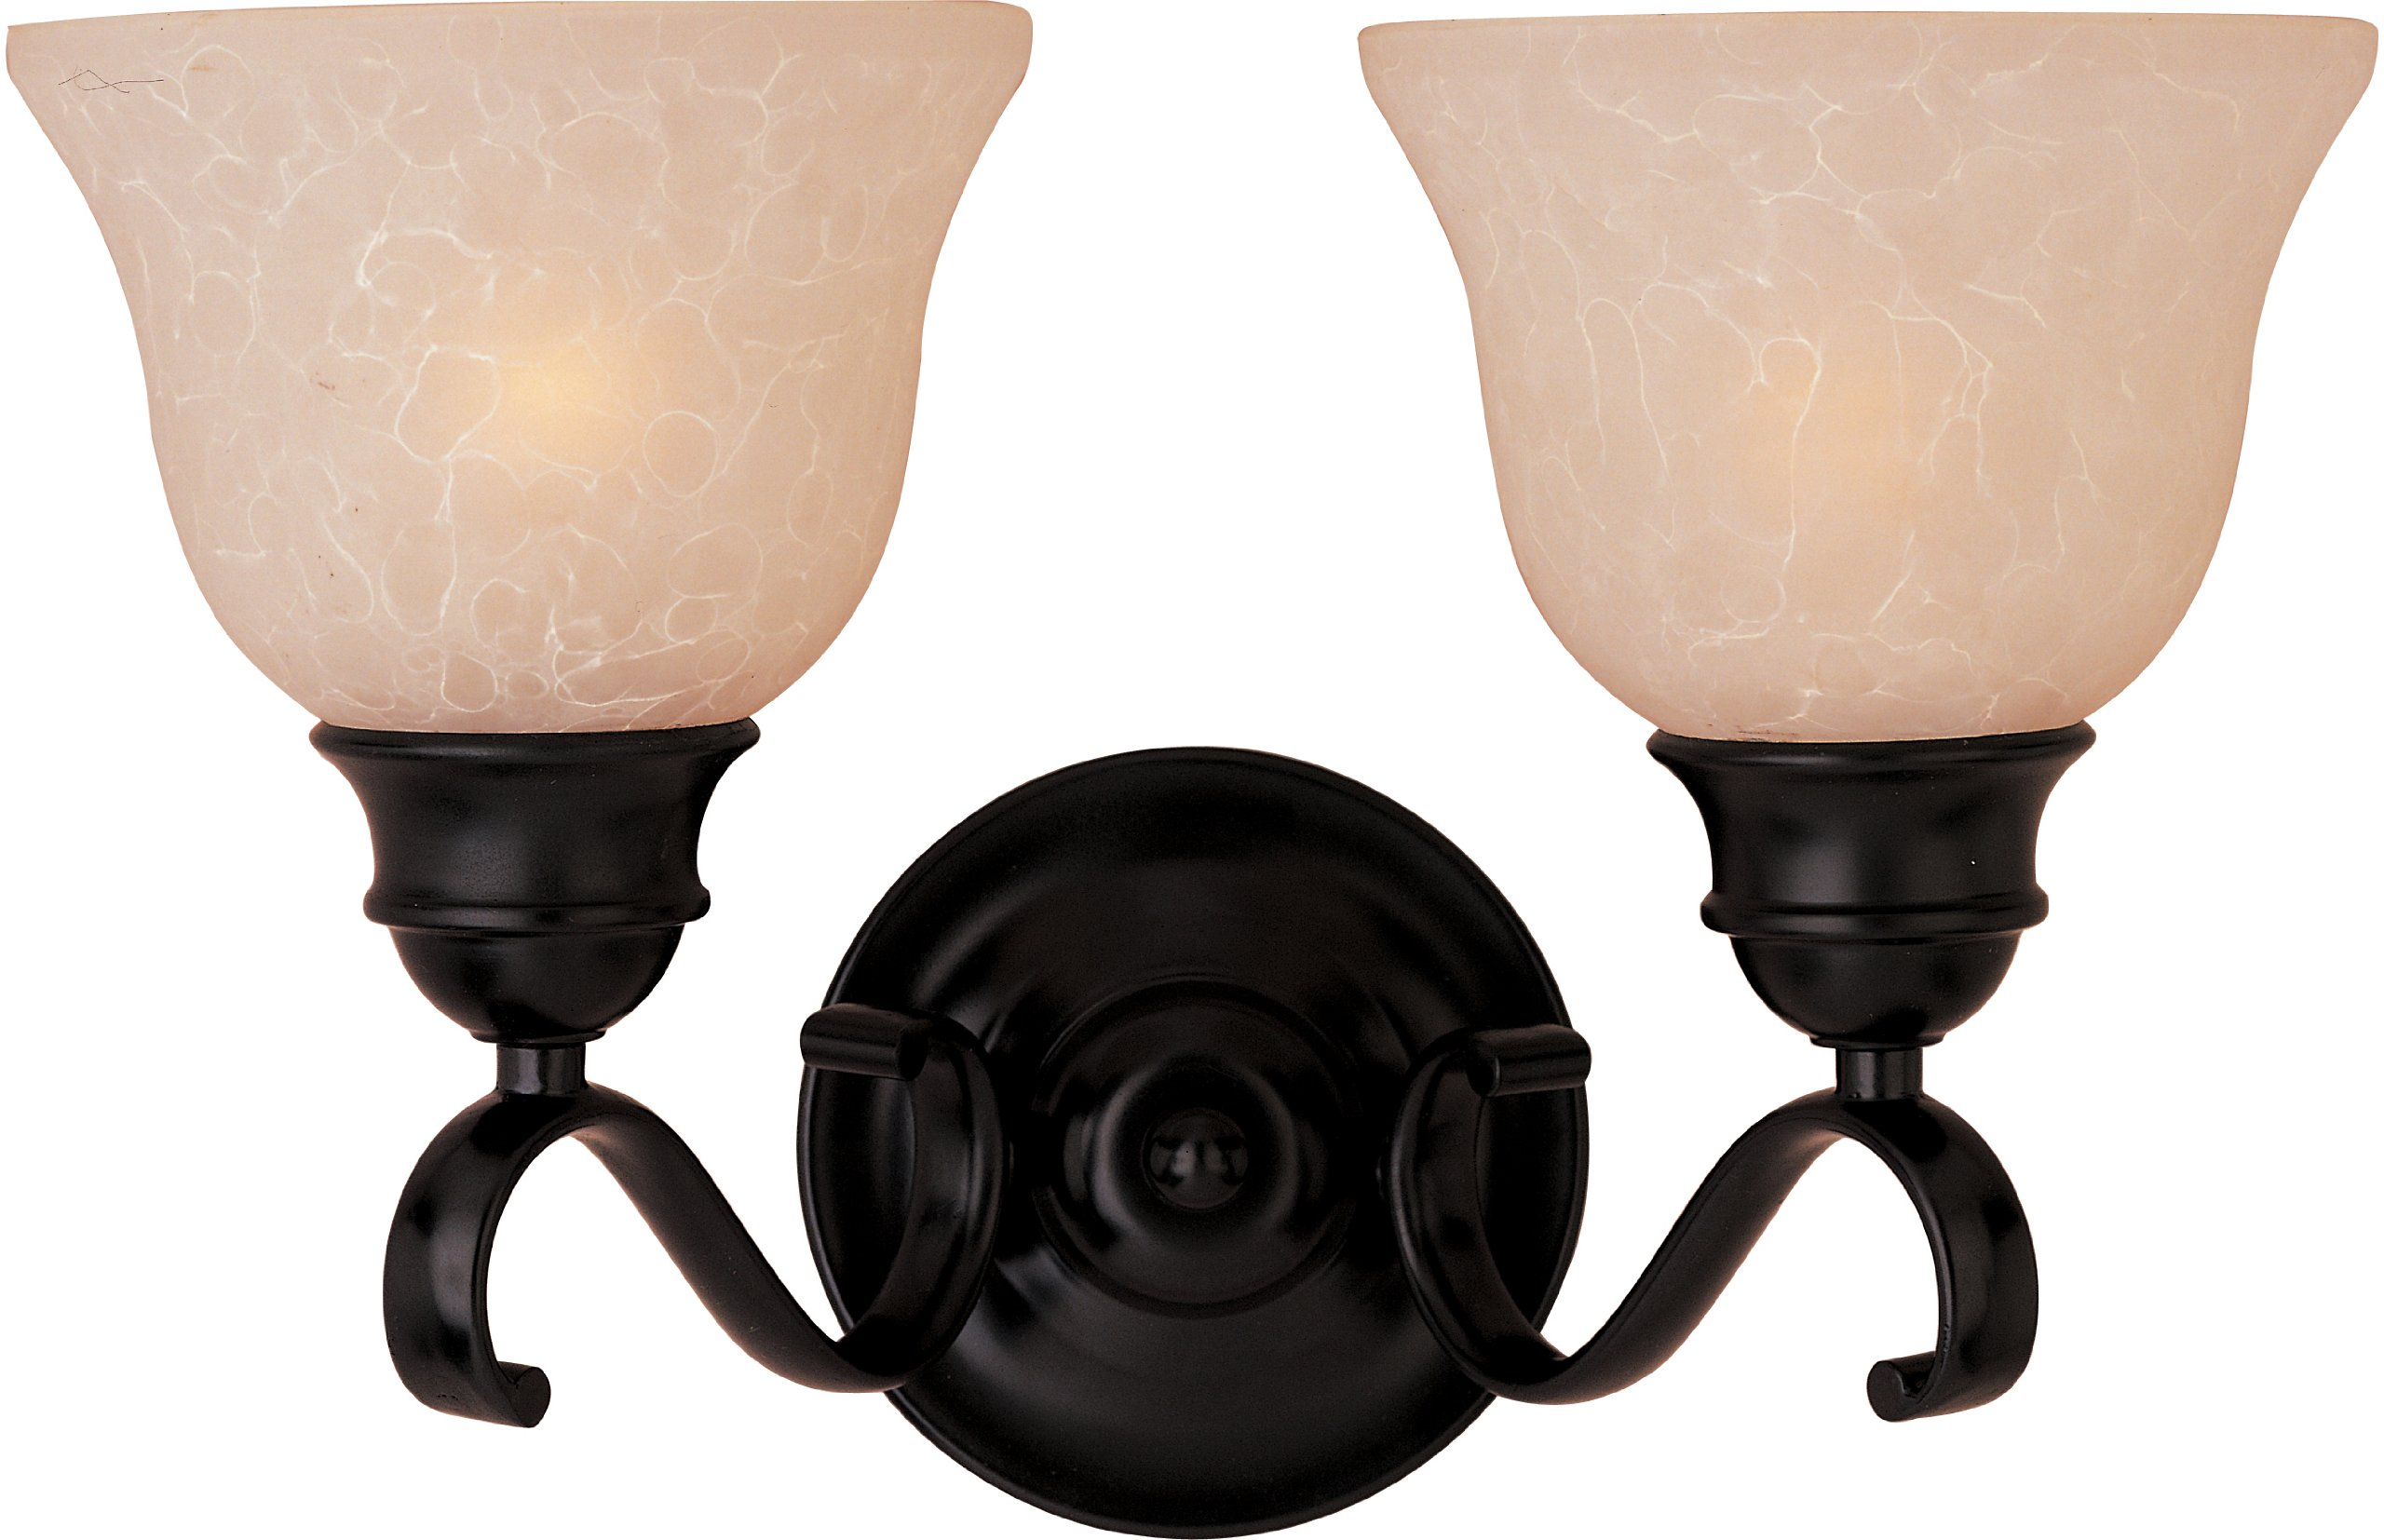 Maxim 85808WSOI Linda EE 2-Light Bath Vanity Wall Sconce, Oil Rubbed Bronze Finish, Wilshire Glass, GU24 Fluorescent Bulb , 100W Max., Dry Safety Rating, Standard Dimmable, Glass Shade Material, 1150 Rated Lumens